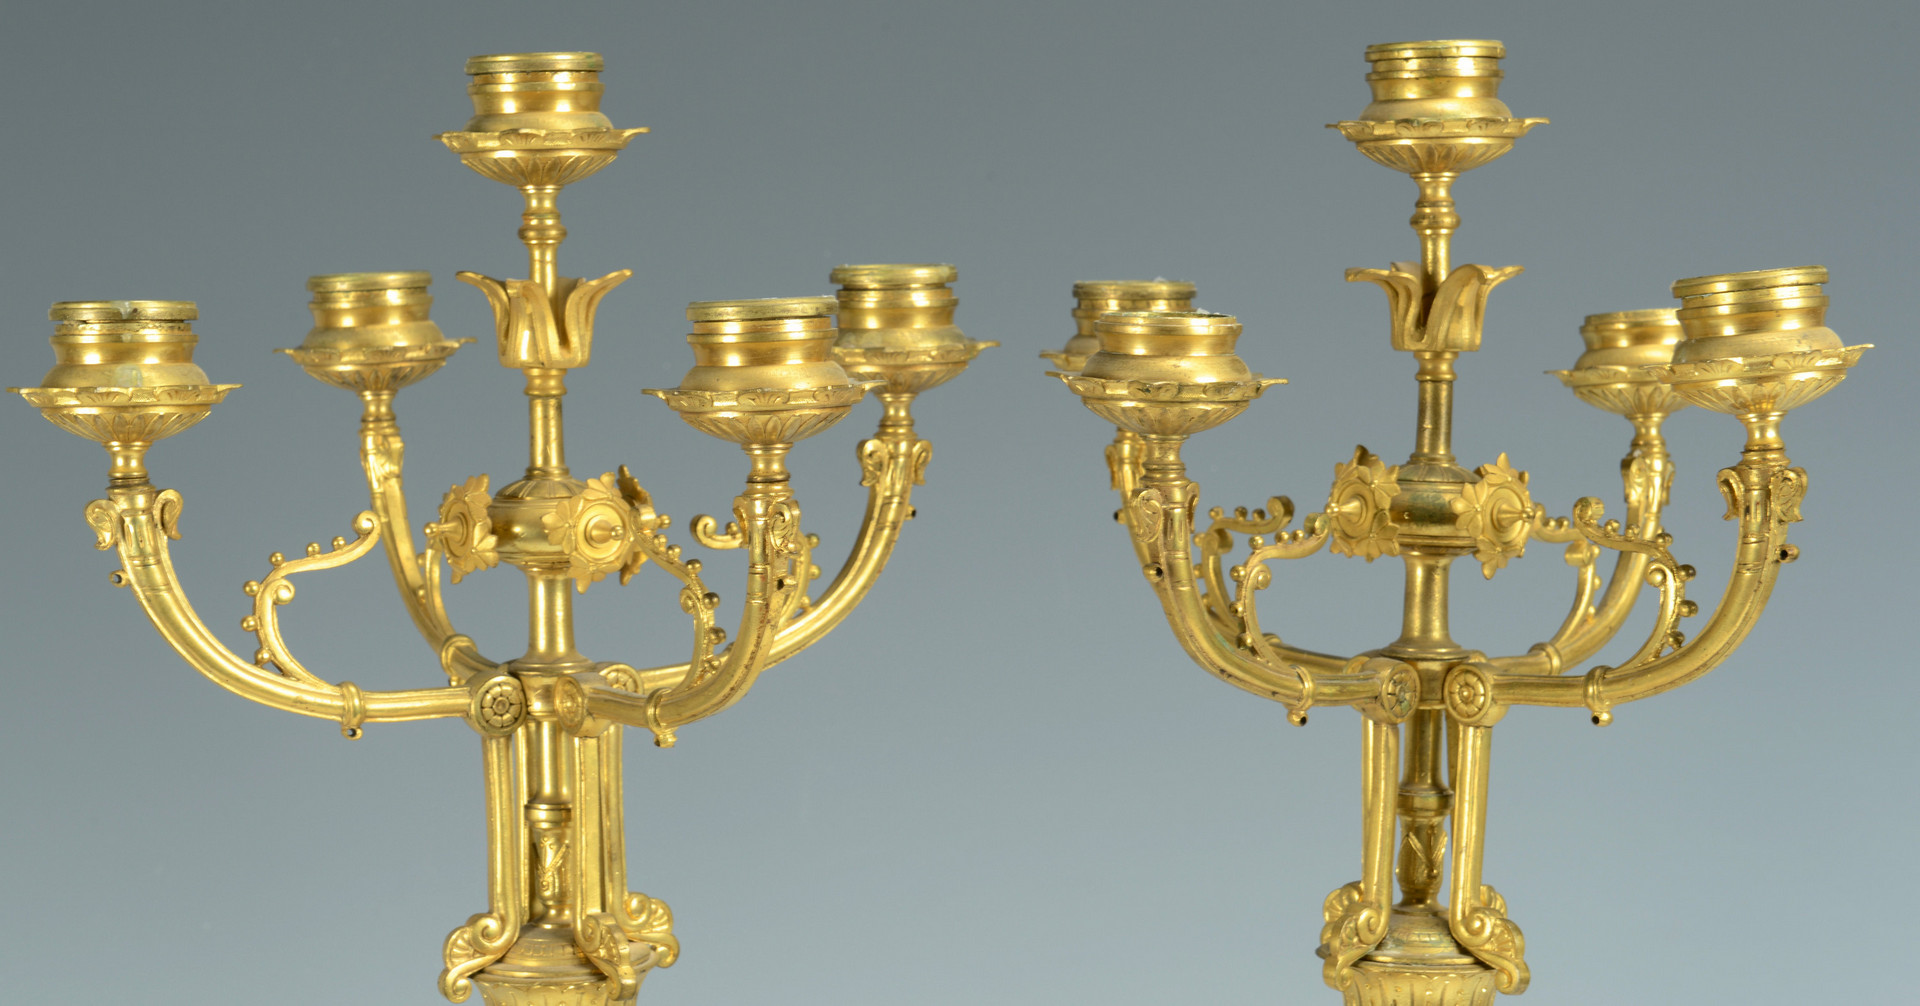 Lot 24: Pr. Enameled Onyx Candelabra